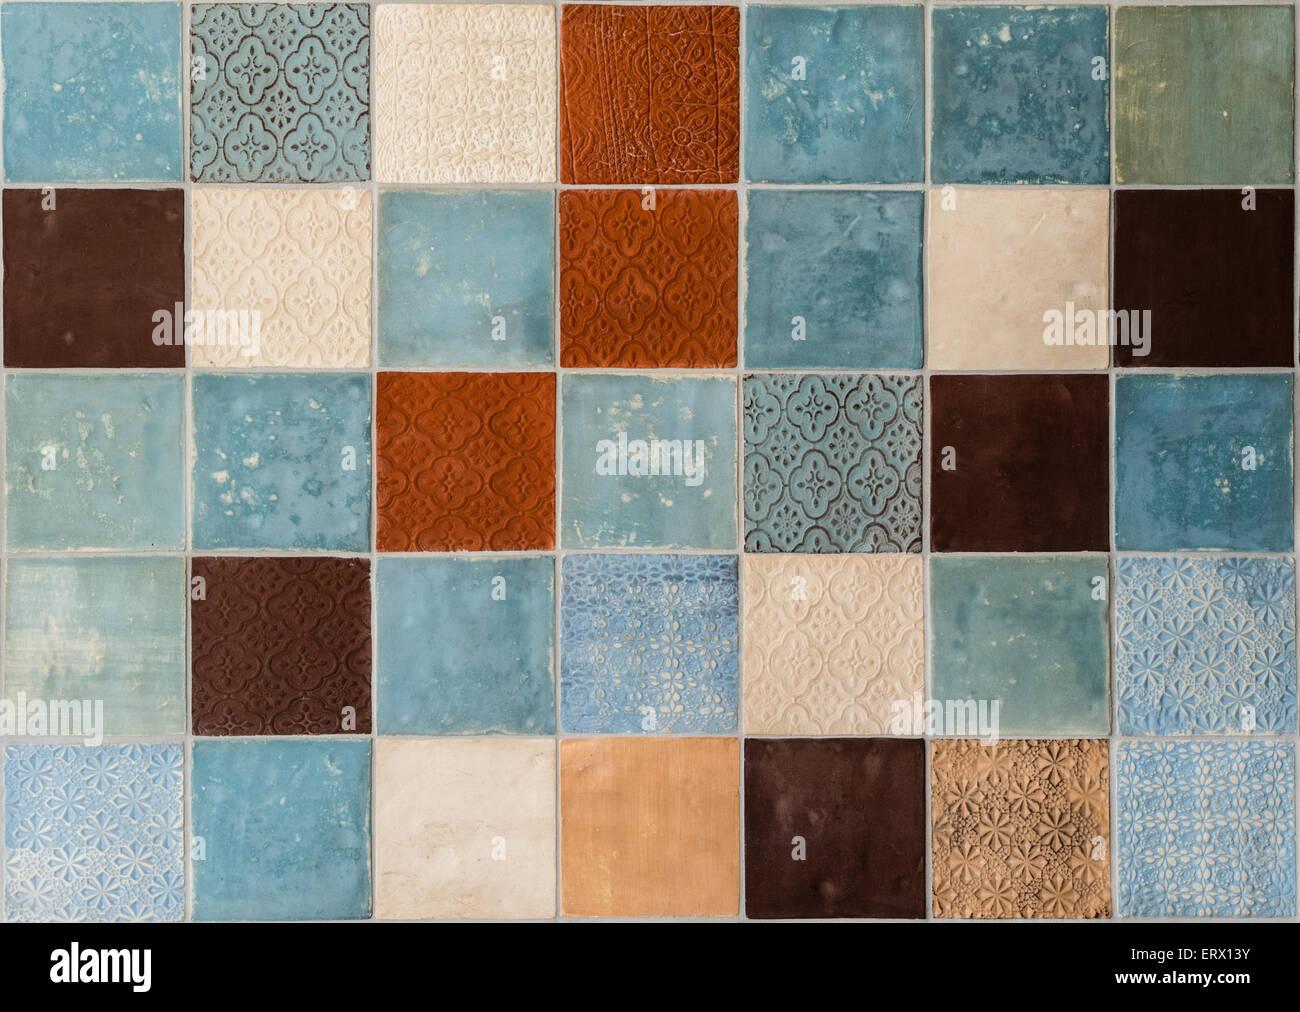 Colorful handmade tiles with rustic patterns - Stock Image